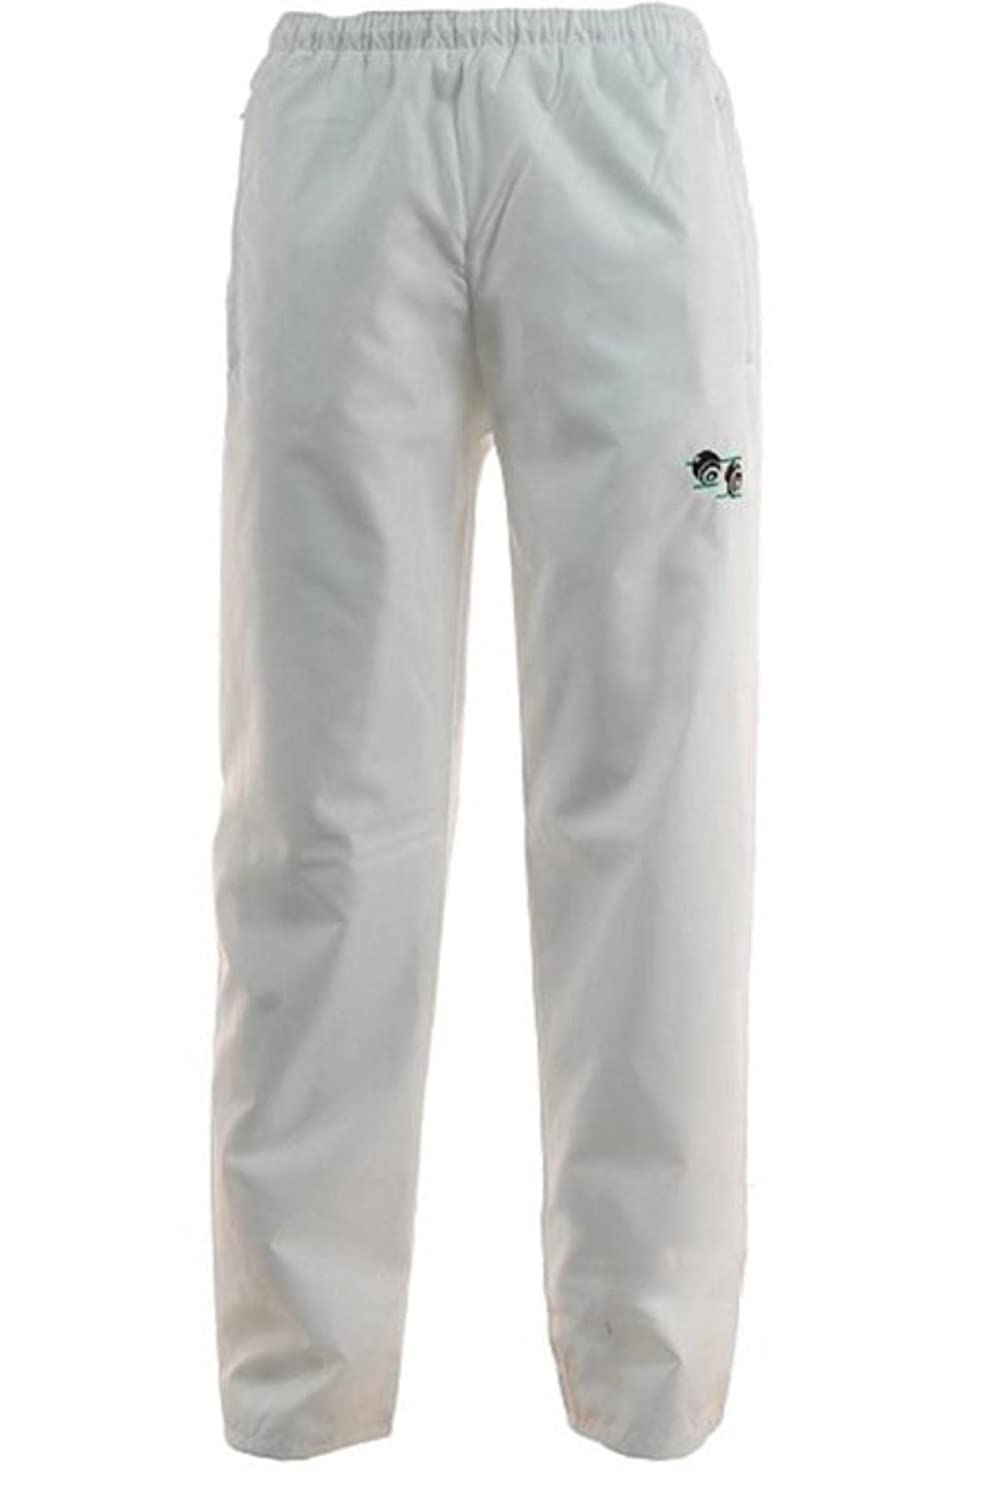 New Bowls Lawn Bowling Unisex Men's Woman's Waterproof Trousers with Bowls Logo Elasticated adjustable waist Free Shipping (Large, White)